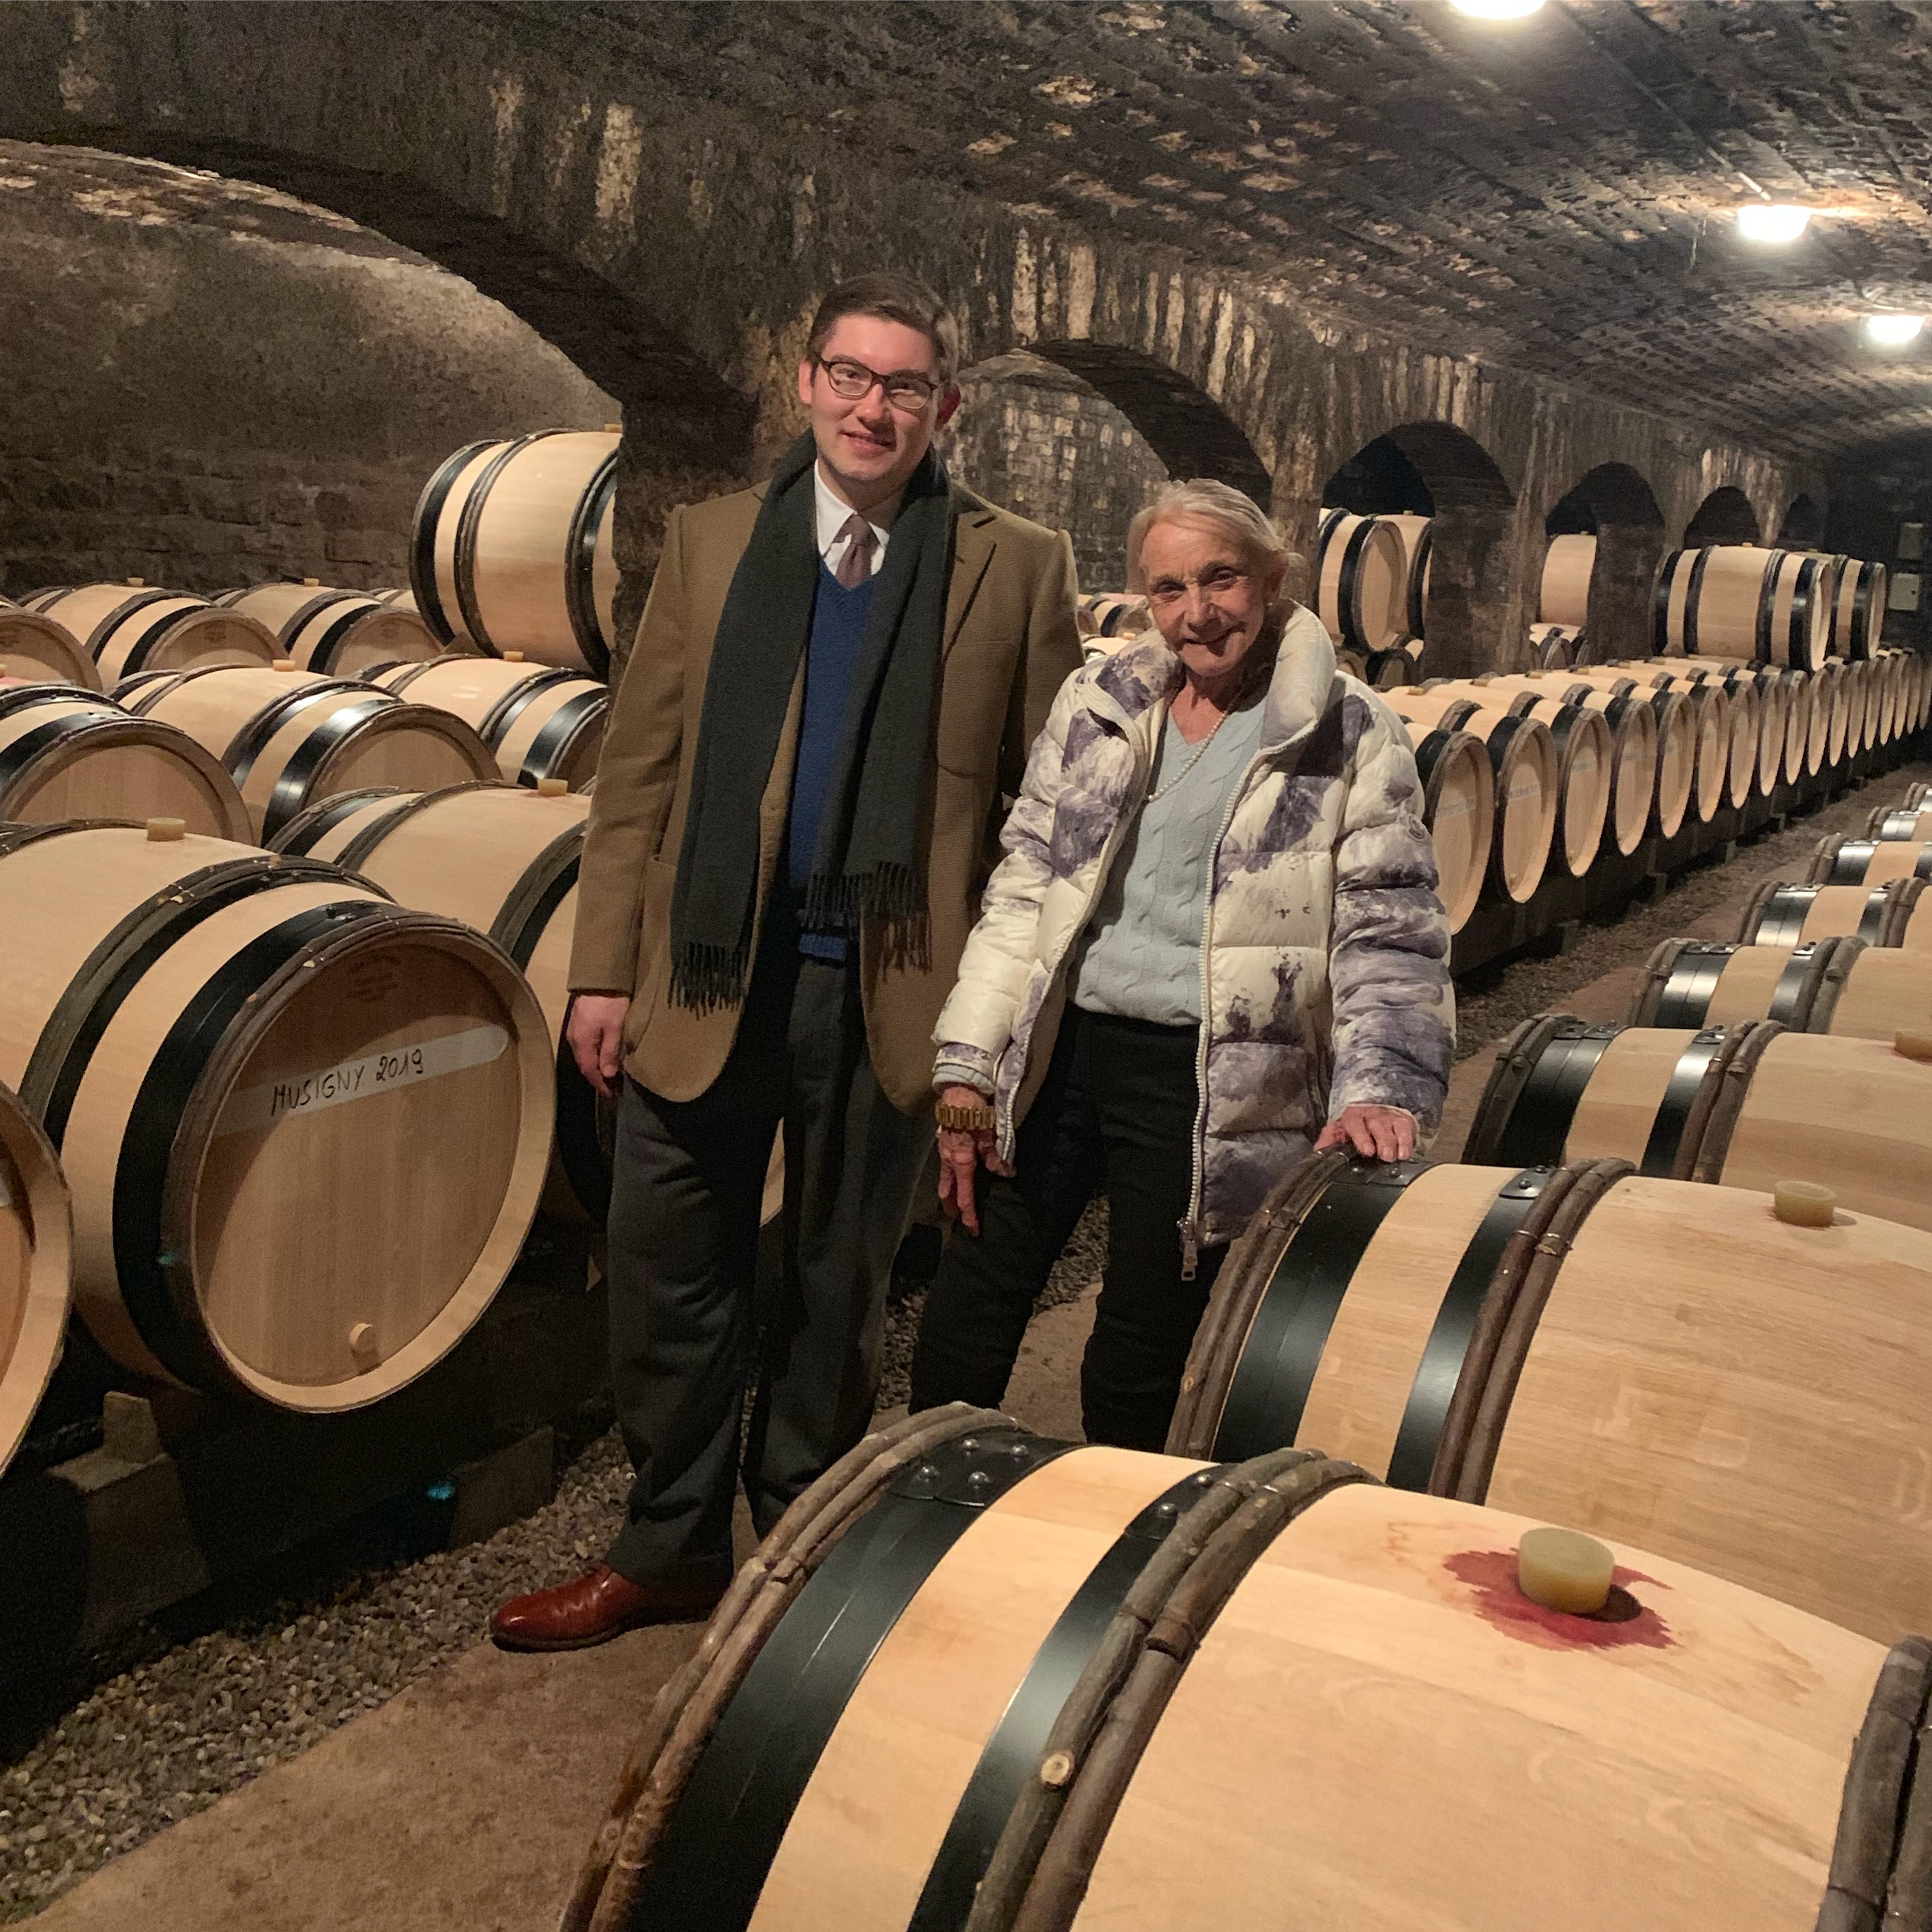 2019 A Thrilling Year For Pinot Noir: Robert Parker Wine Advocate Releases Burgundy Côte dOr Wine Report